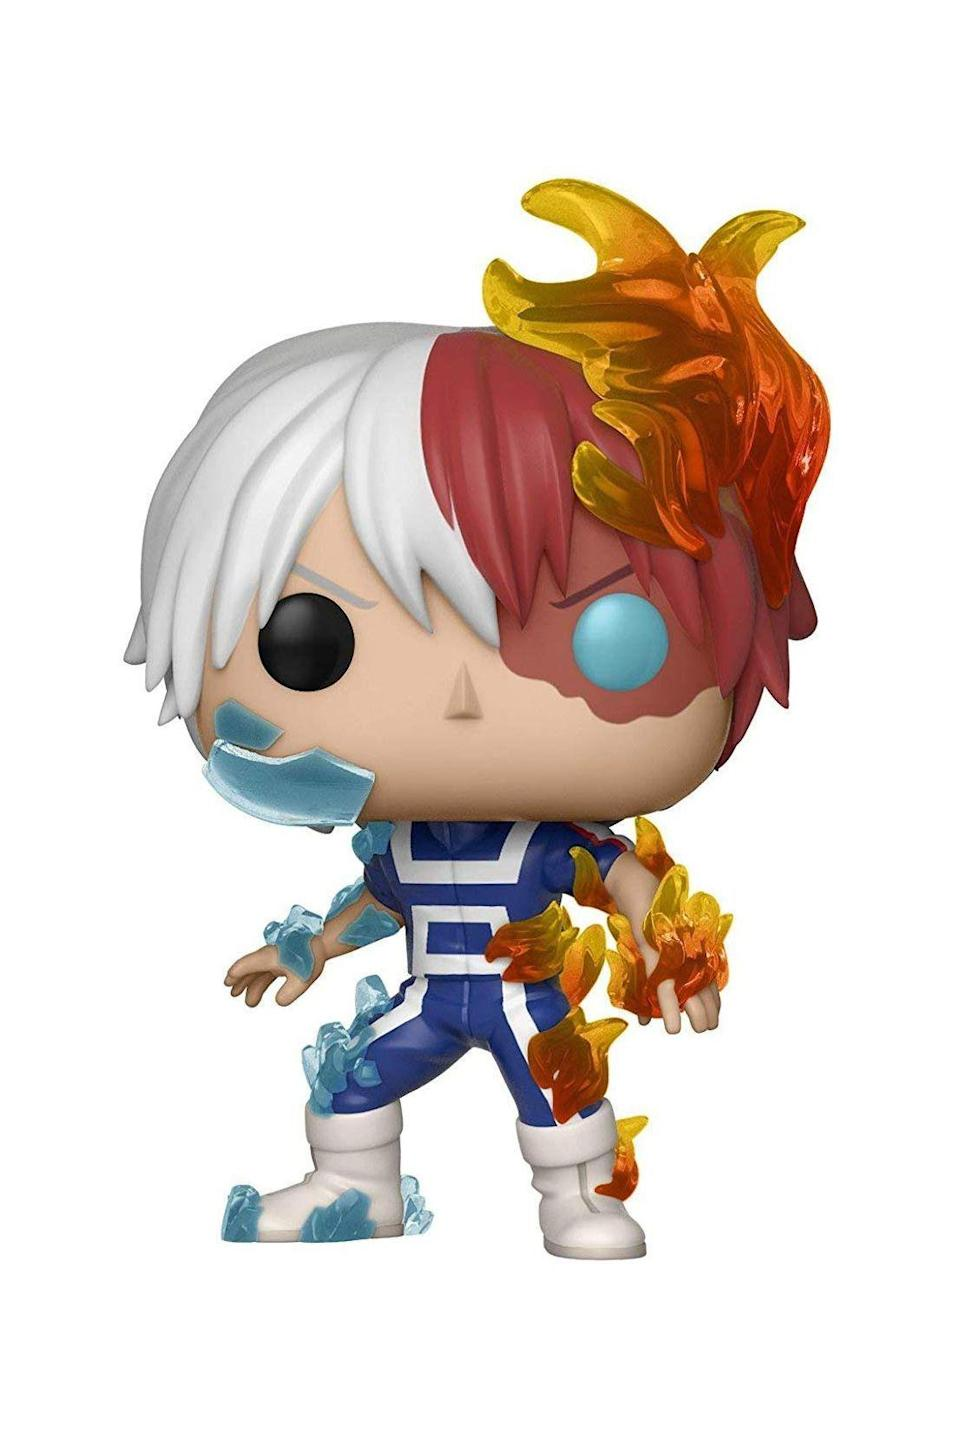 """<p><strong>Funko</strong></p><p>amazon.com</p><p><strong>$19.94</strong></p><p><a href=""""https://www.amazon.com/dp/B07D7SMLG9?tag=syn-yahoo-20&ascsubtag=%5Bartid%7C10063.g.34741247%5Bsrc%7Cyahoo-us"""" rel=""""nofollow noopener"""" target=""""_blank"""" data-ylk=""""slk:SHOP IT"""" class=""""link rapid-noclick-resp"""">SHOP IT</a></p><p>Gift the anime watcher in your life this <em>My Hero Academia </em>POP! figurine of Todoroki. True anime nerds will be well-versed in this series and will proudly display it on their bookshelf or coffee table.</p>"""